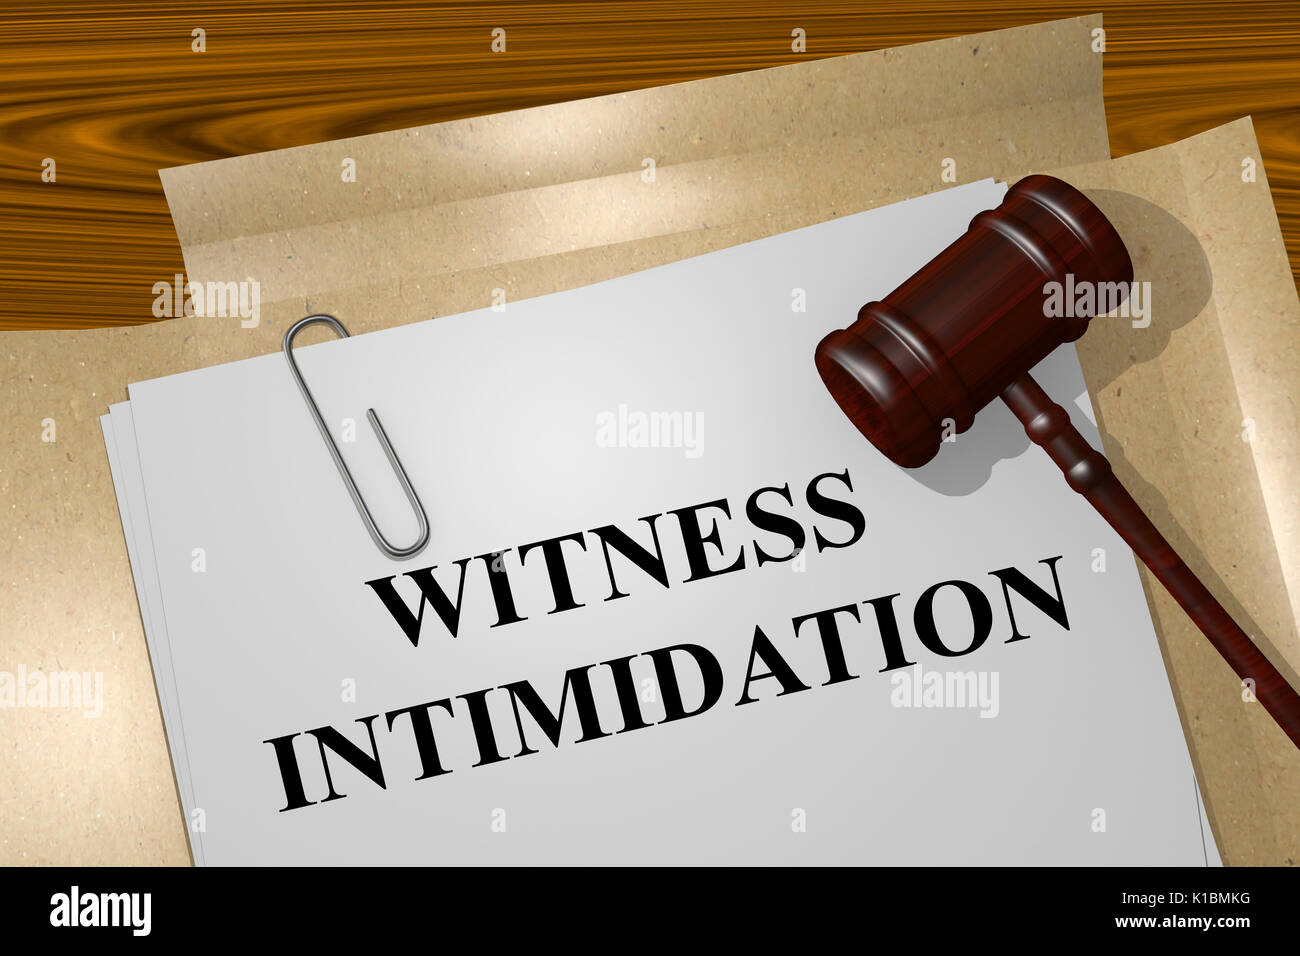 Render illustration of Witness Intimidation title on Legal Documents - Stock Image